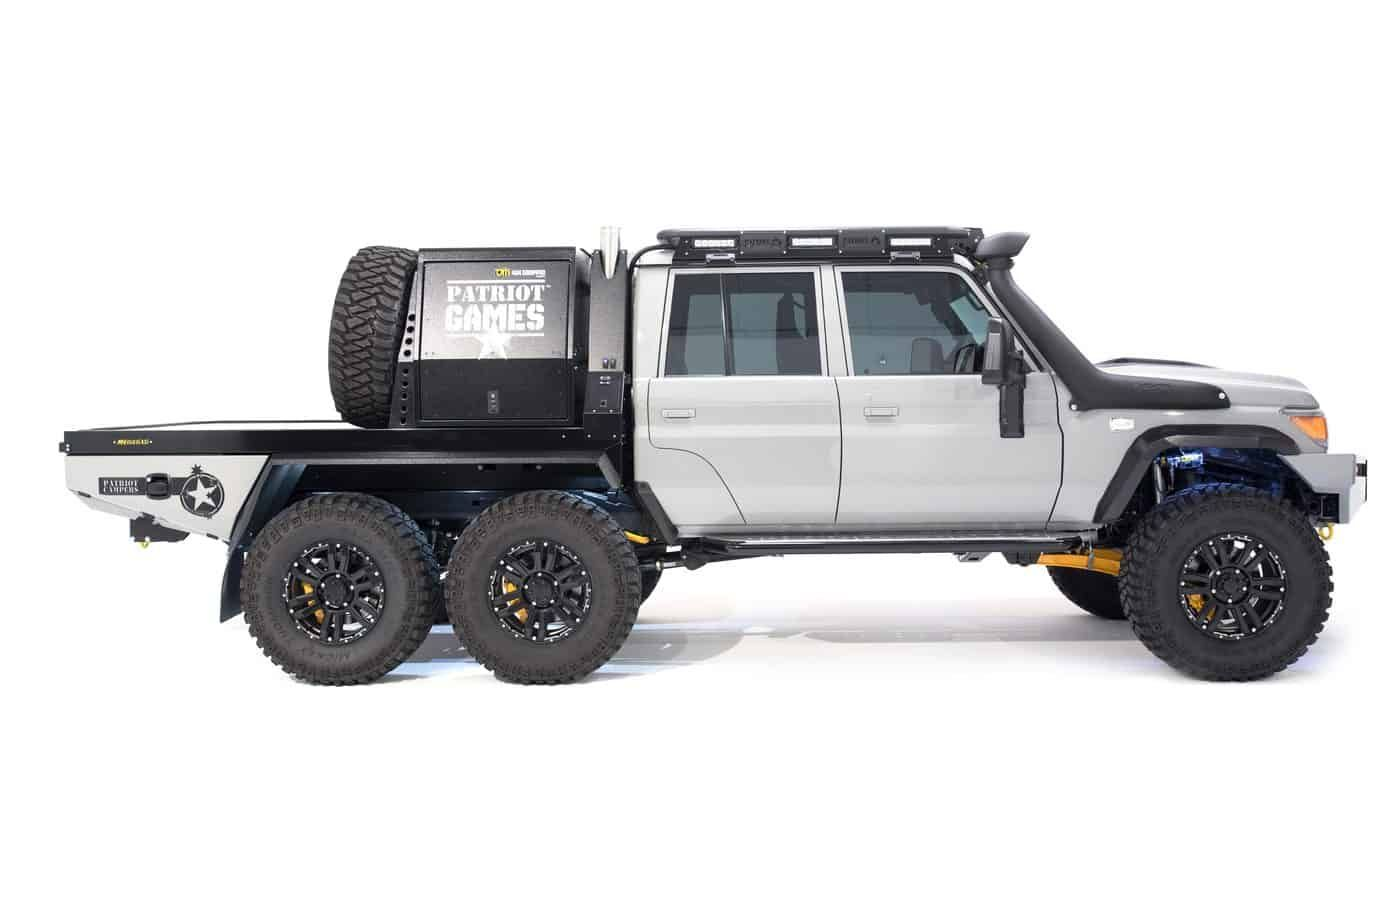 Pin On Off Road Vehicle